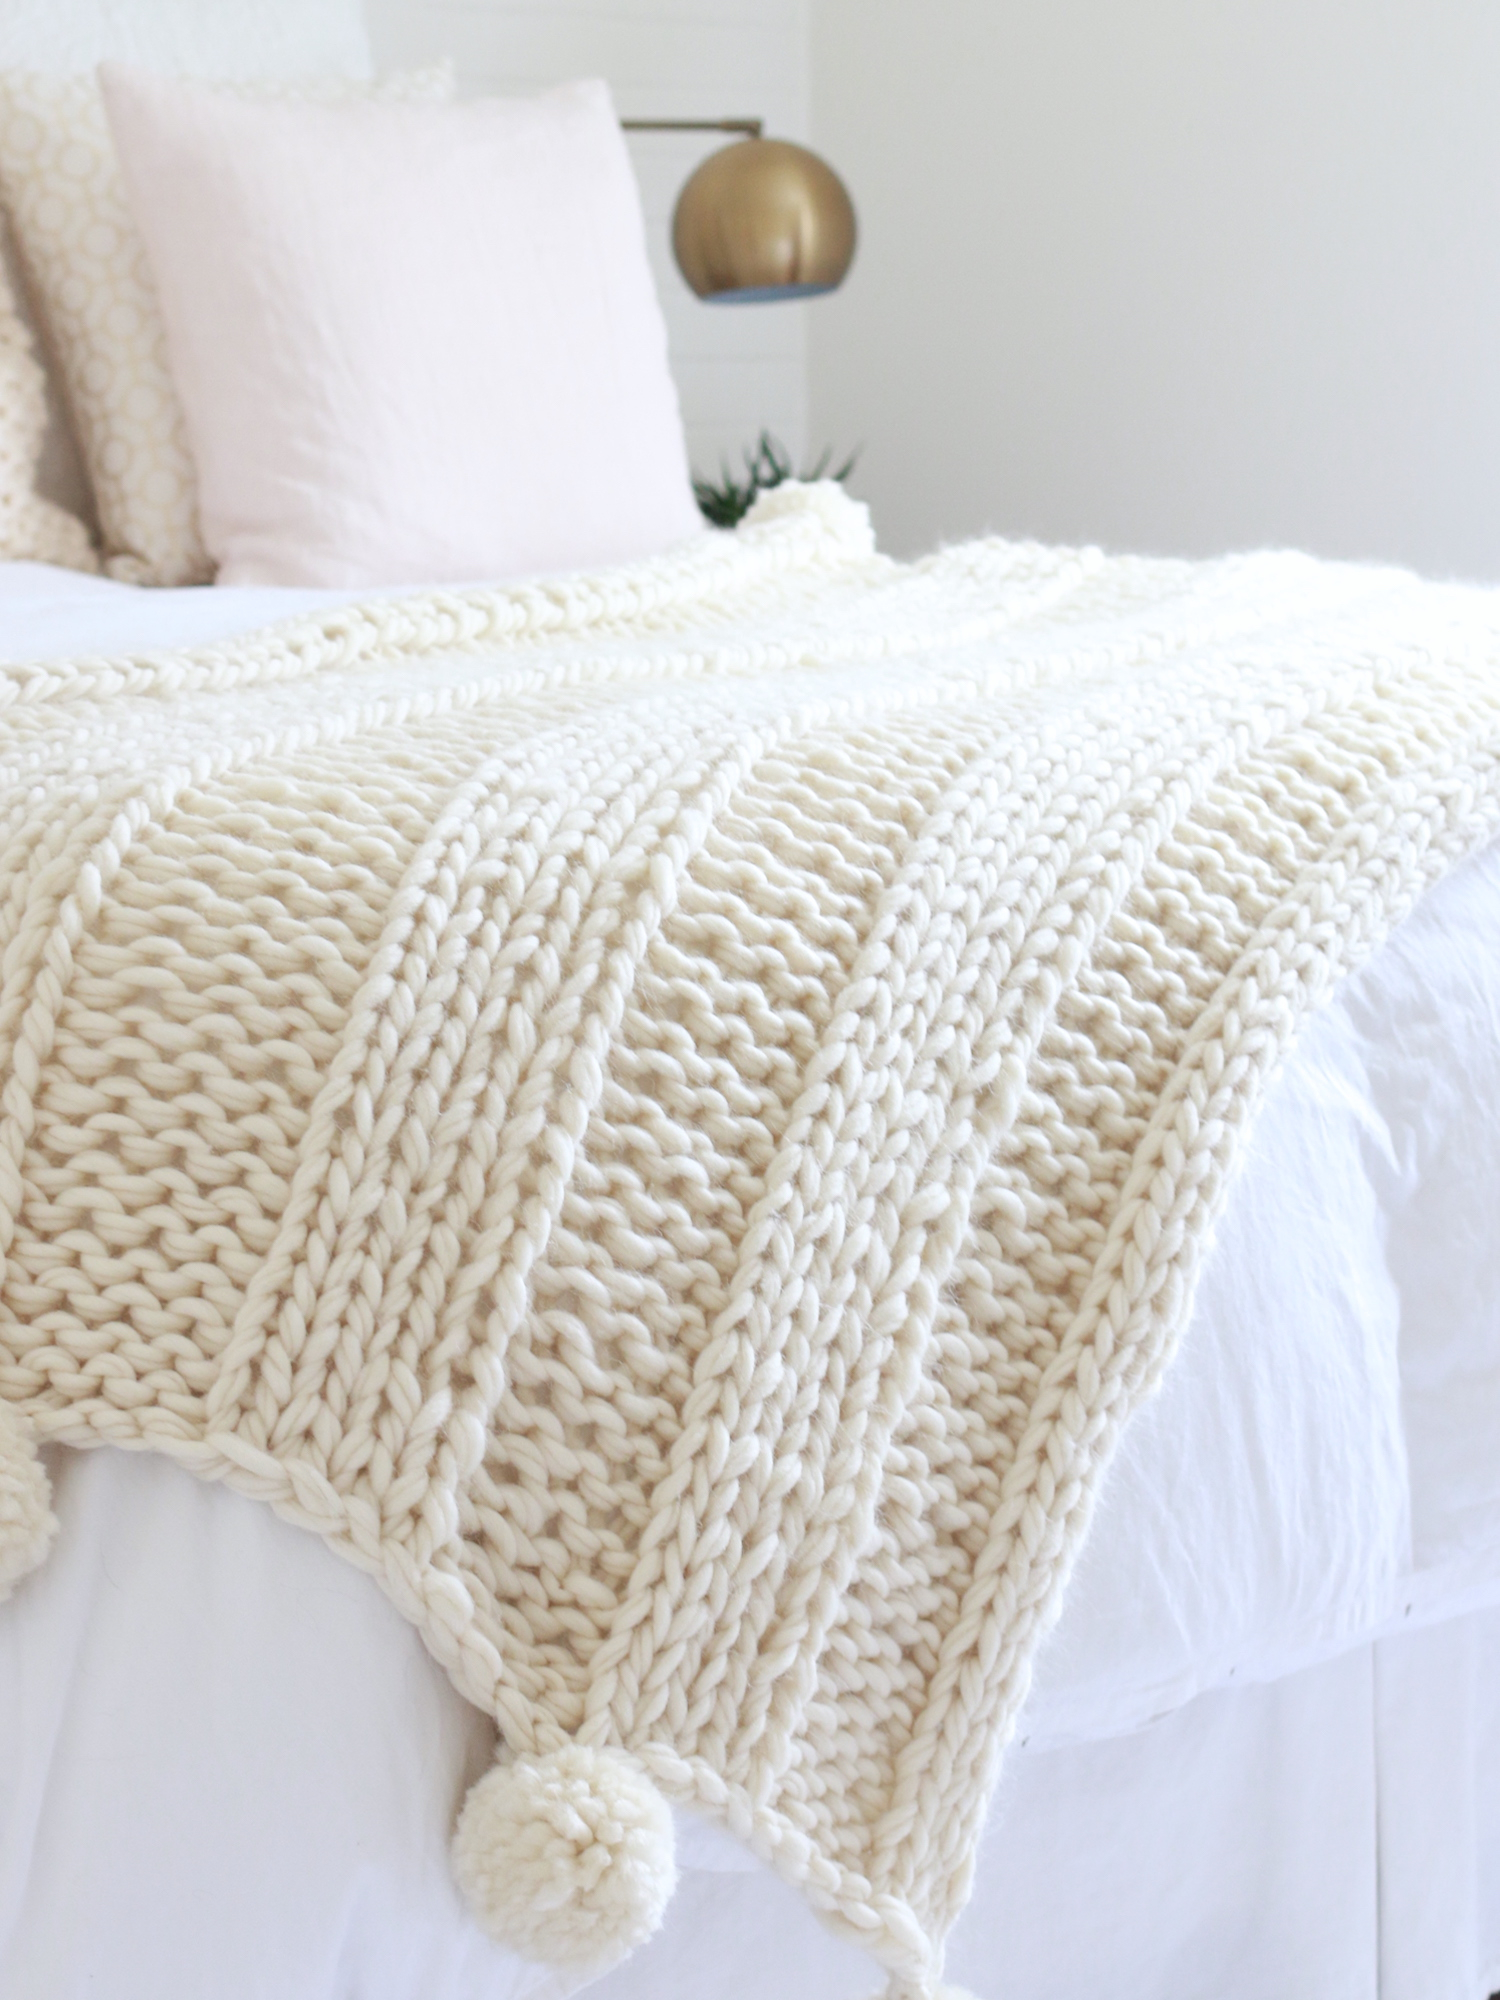 Knit Blanket Pattern Free Chunky Knit Blanket Pattern Knit A Blanket In A Weekend Easy